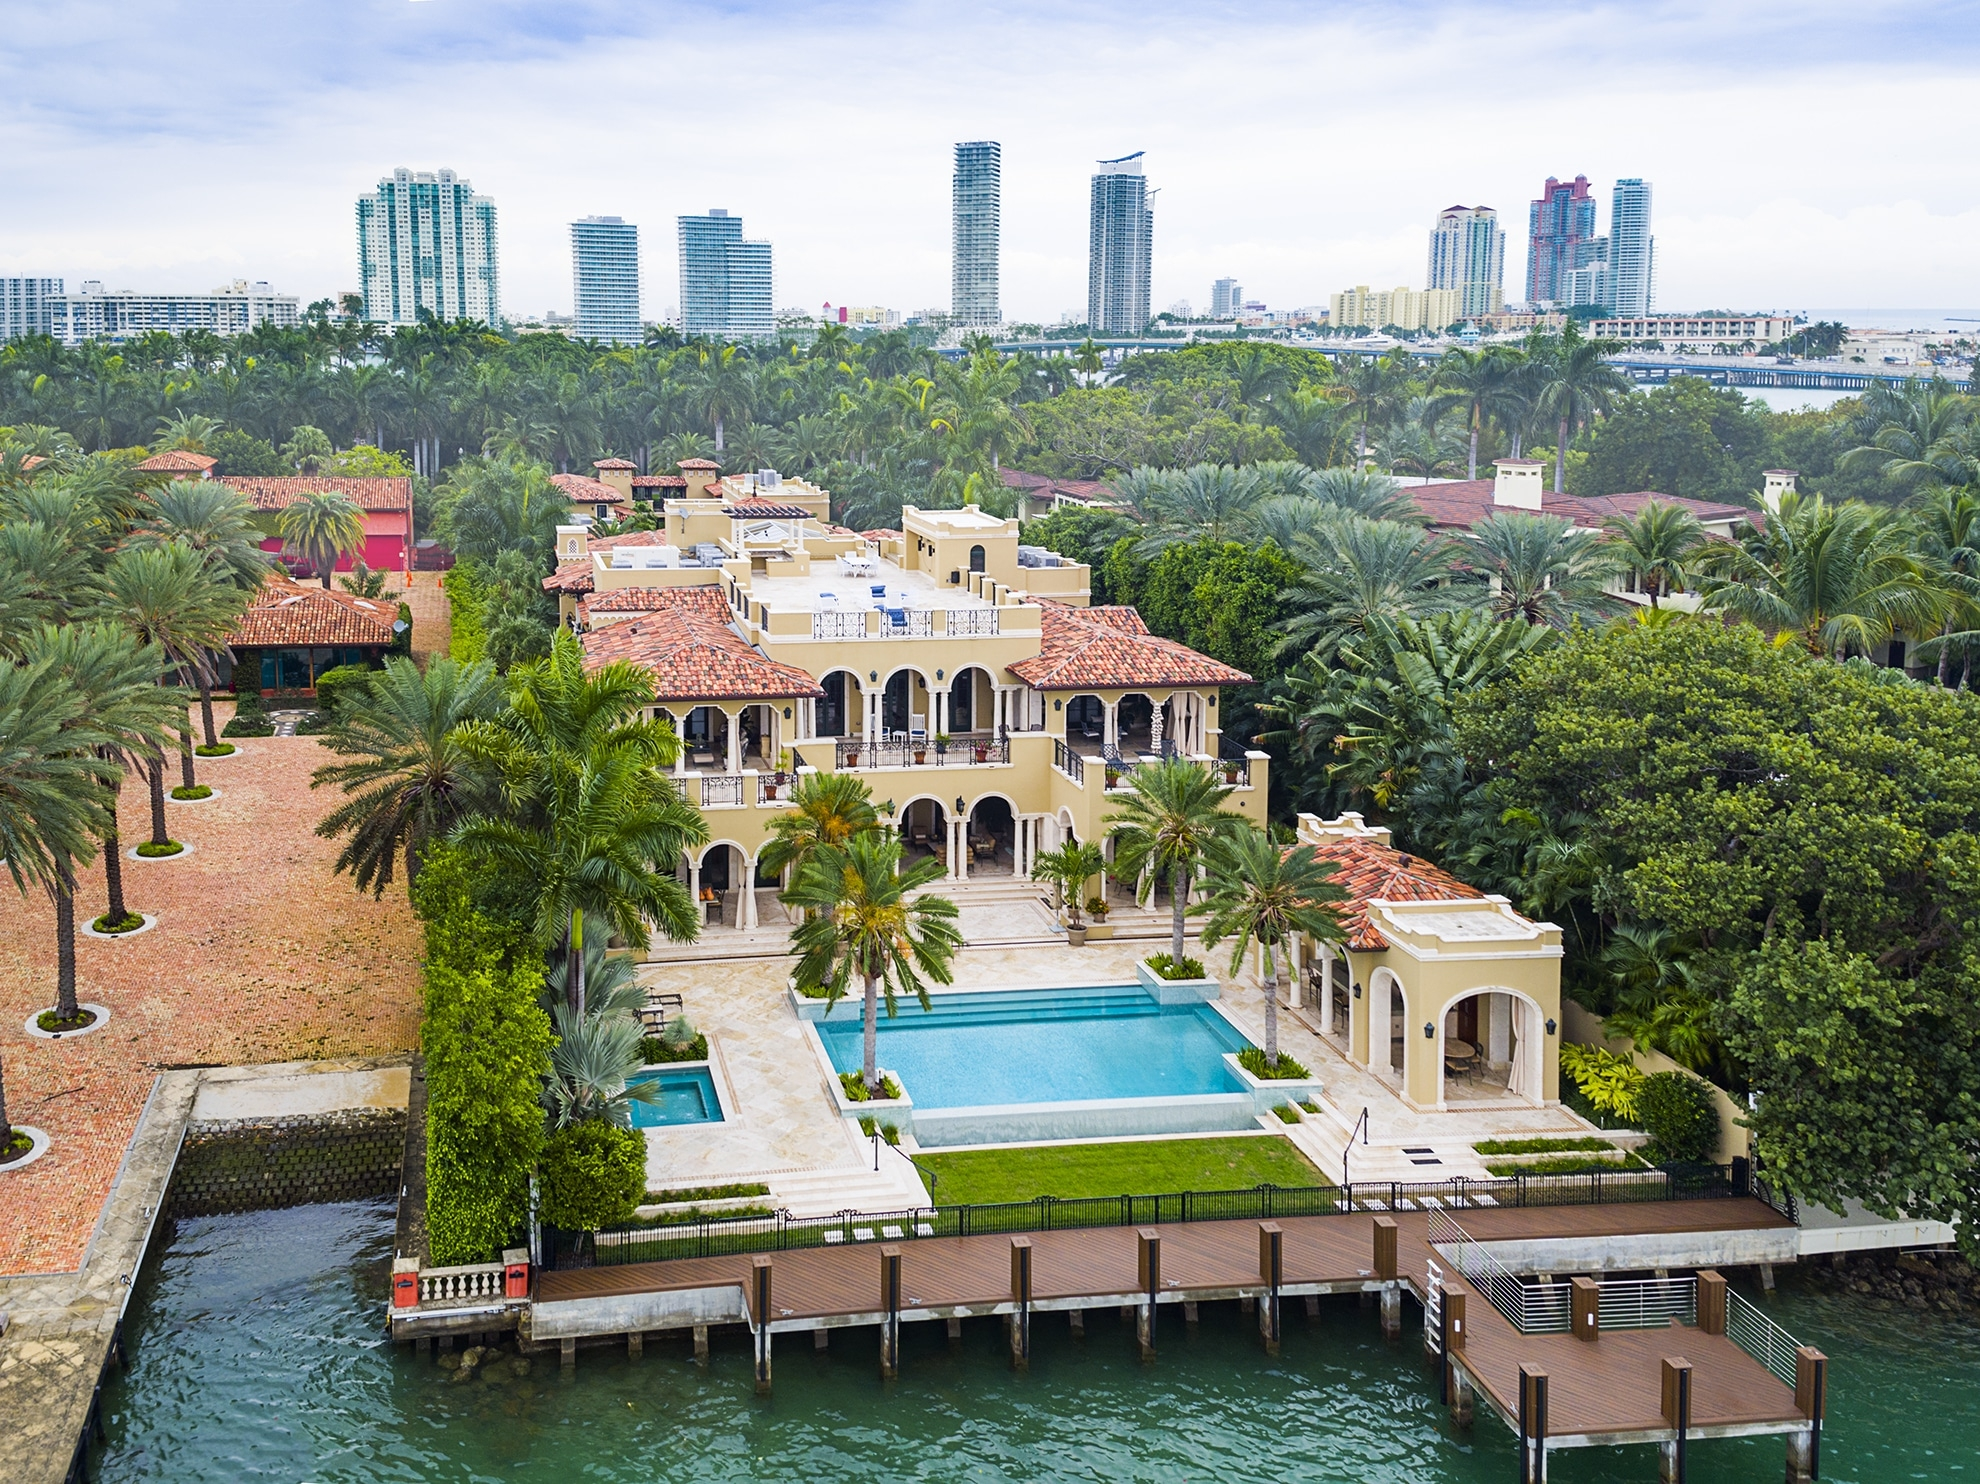 Drone Photograph of Mansion on Star Island Miami Beach, Florida